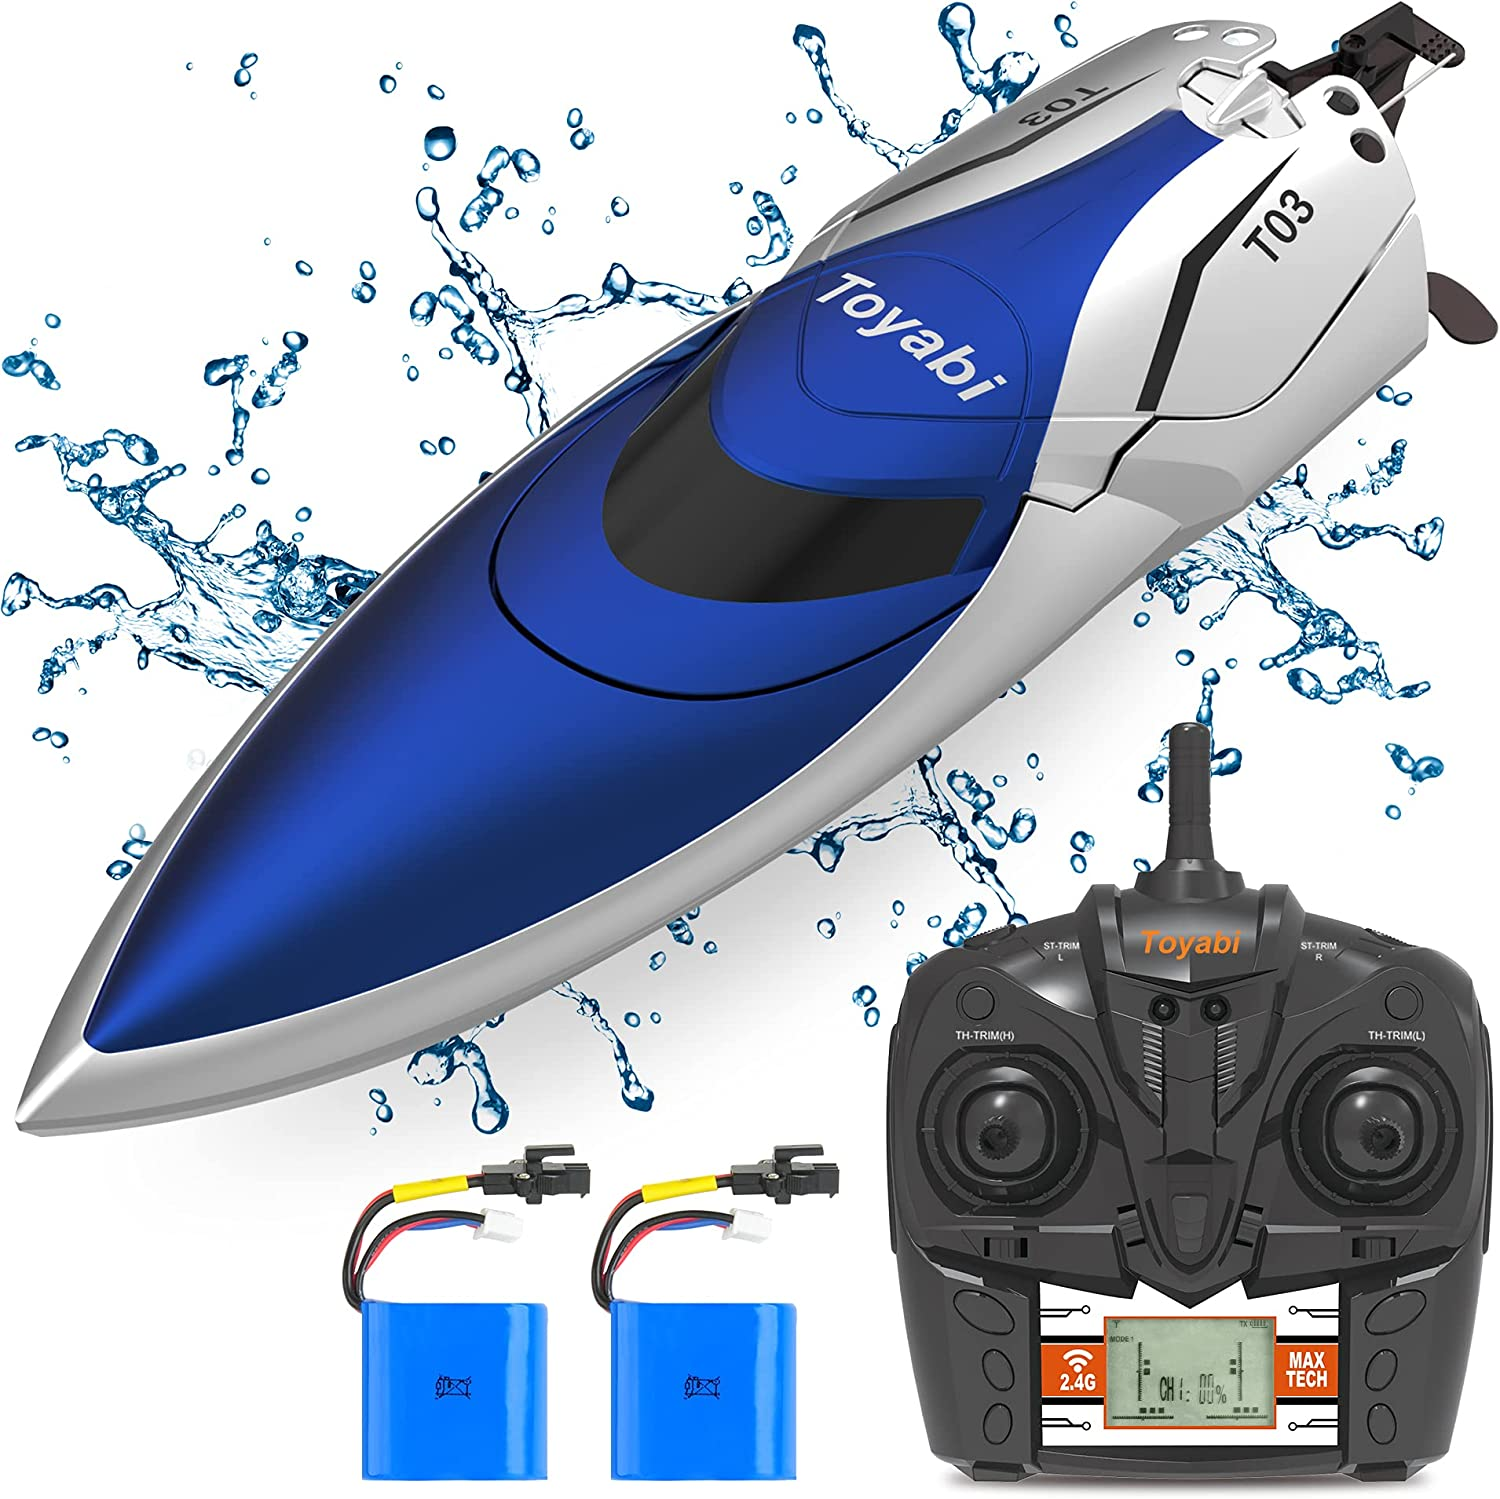 RC Racing Boat GizmoVine High Control Poo Remote Speed for Attention brand Very popular